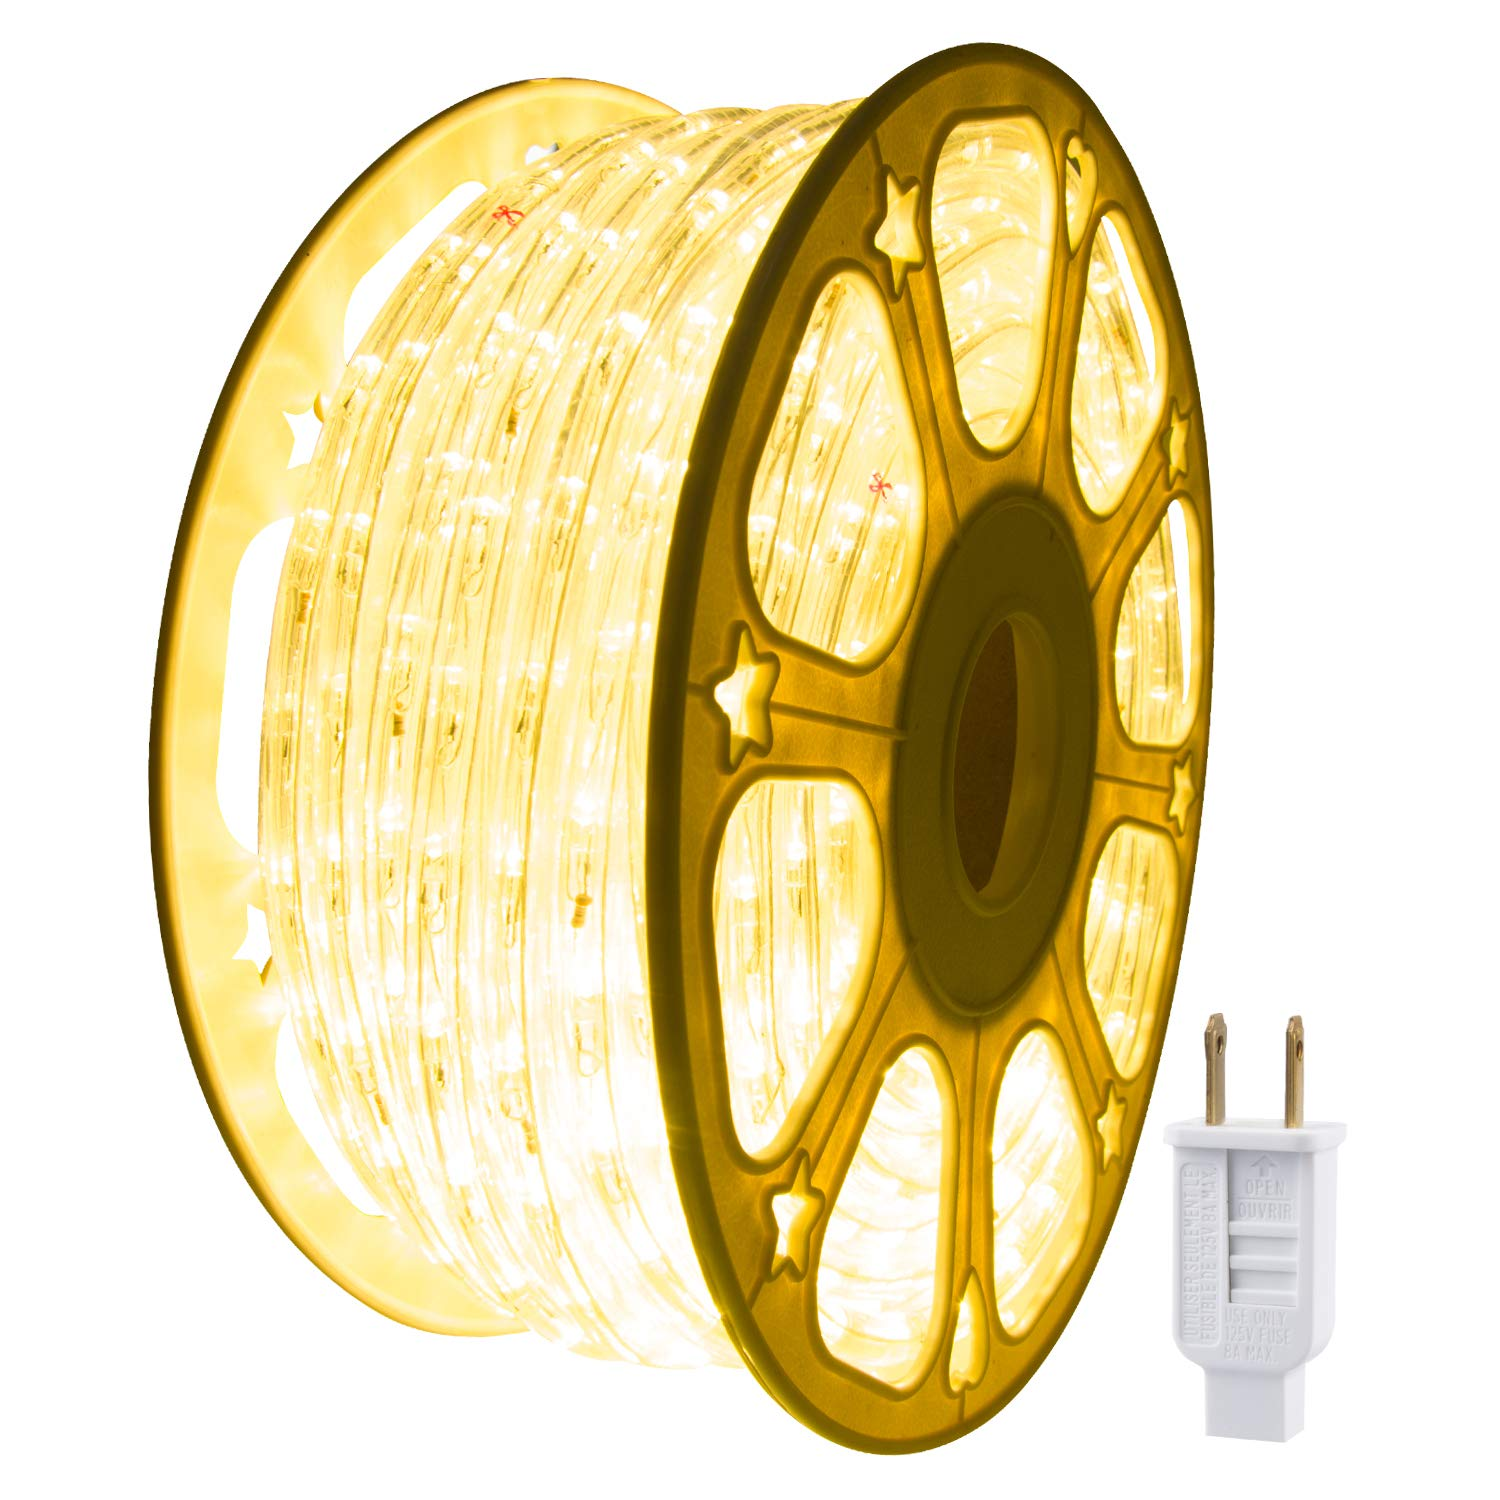 JUNWEN Led Rope Lights Outdoor, Indoor, 114ft 35m, Strip Light, Warm White, 1260LEDs, Waterproof, String Lighting, Plug in 110V, Connectable, Cuttable, Flexible, 8A Fuse Holder Powered